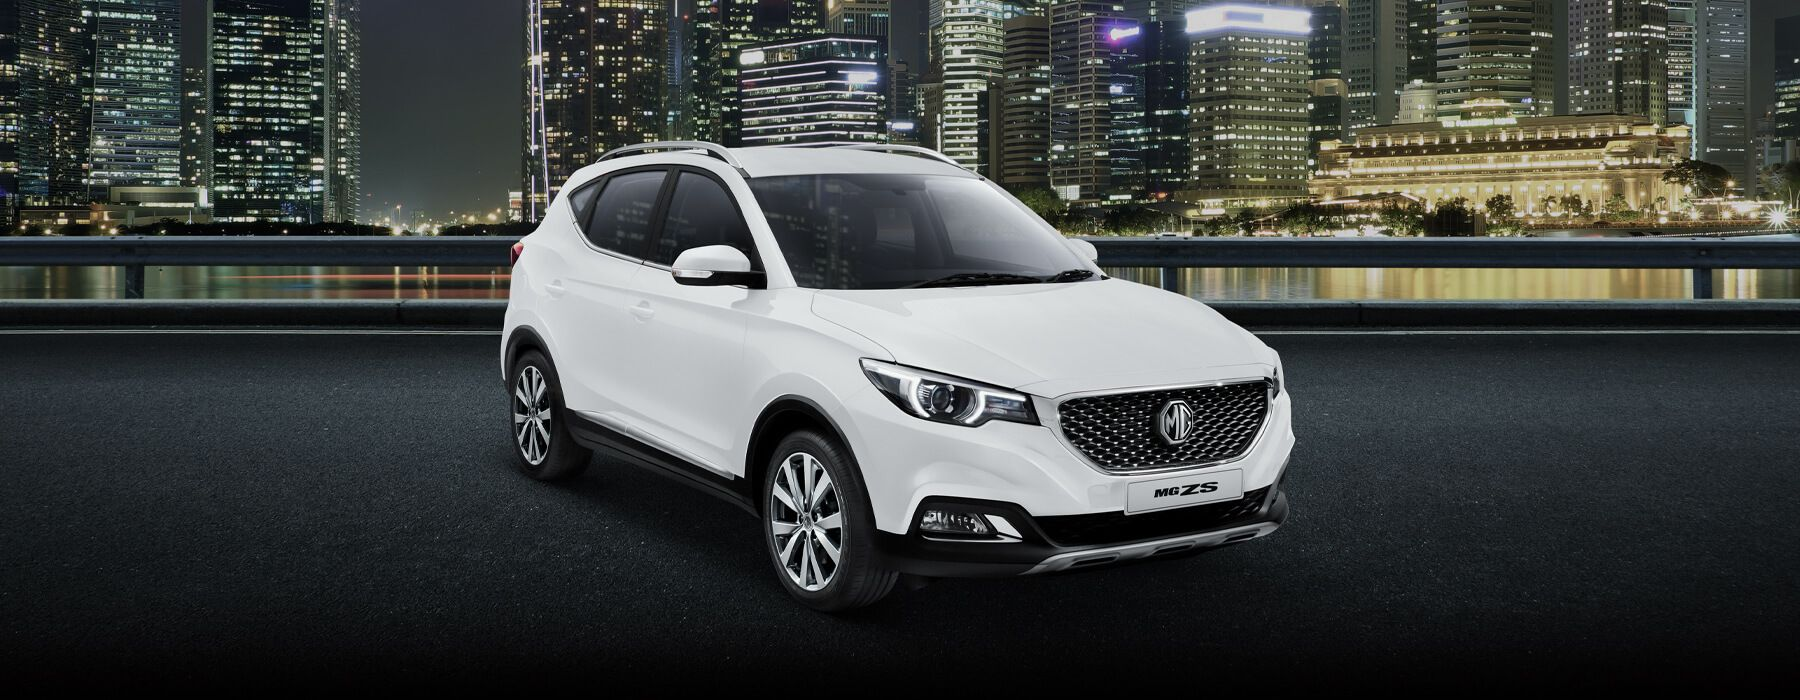 MG-ZS-Model-Banner-Sep21-YP